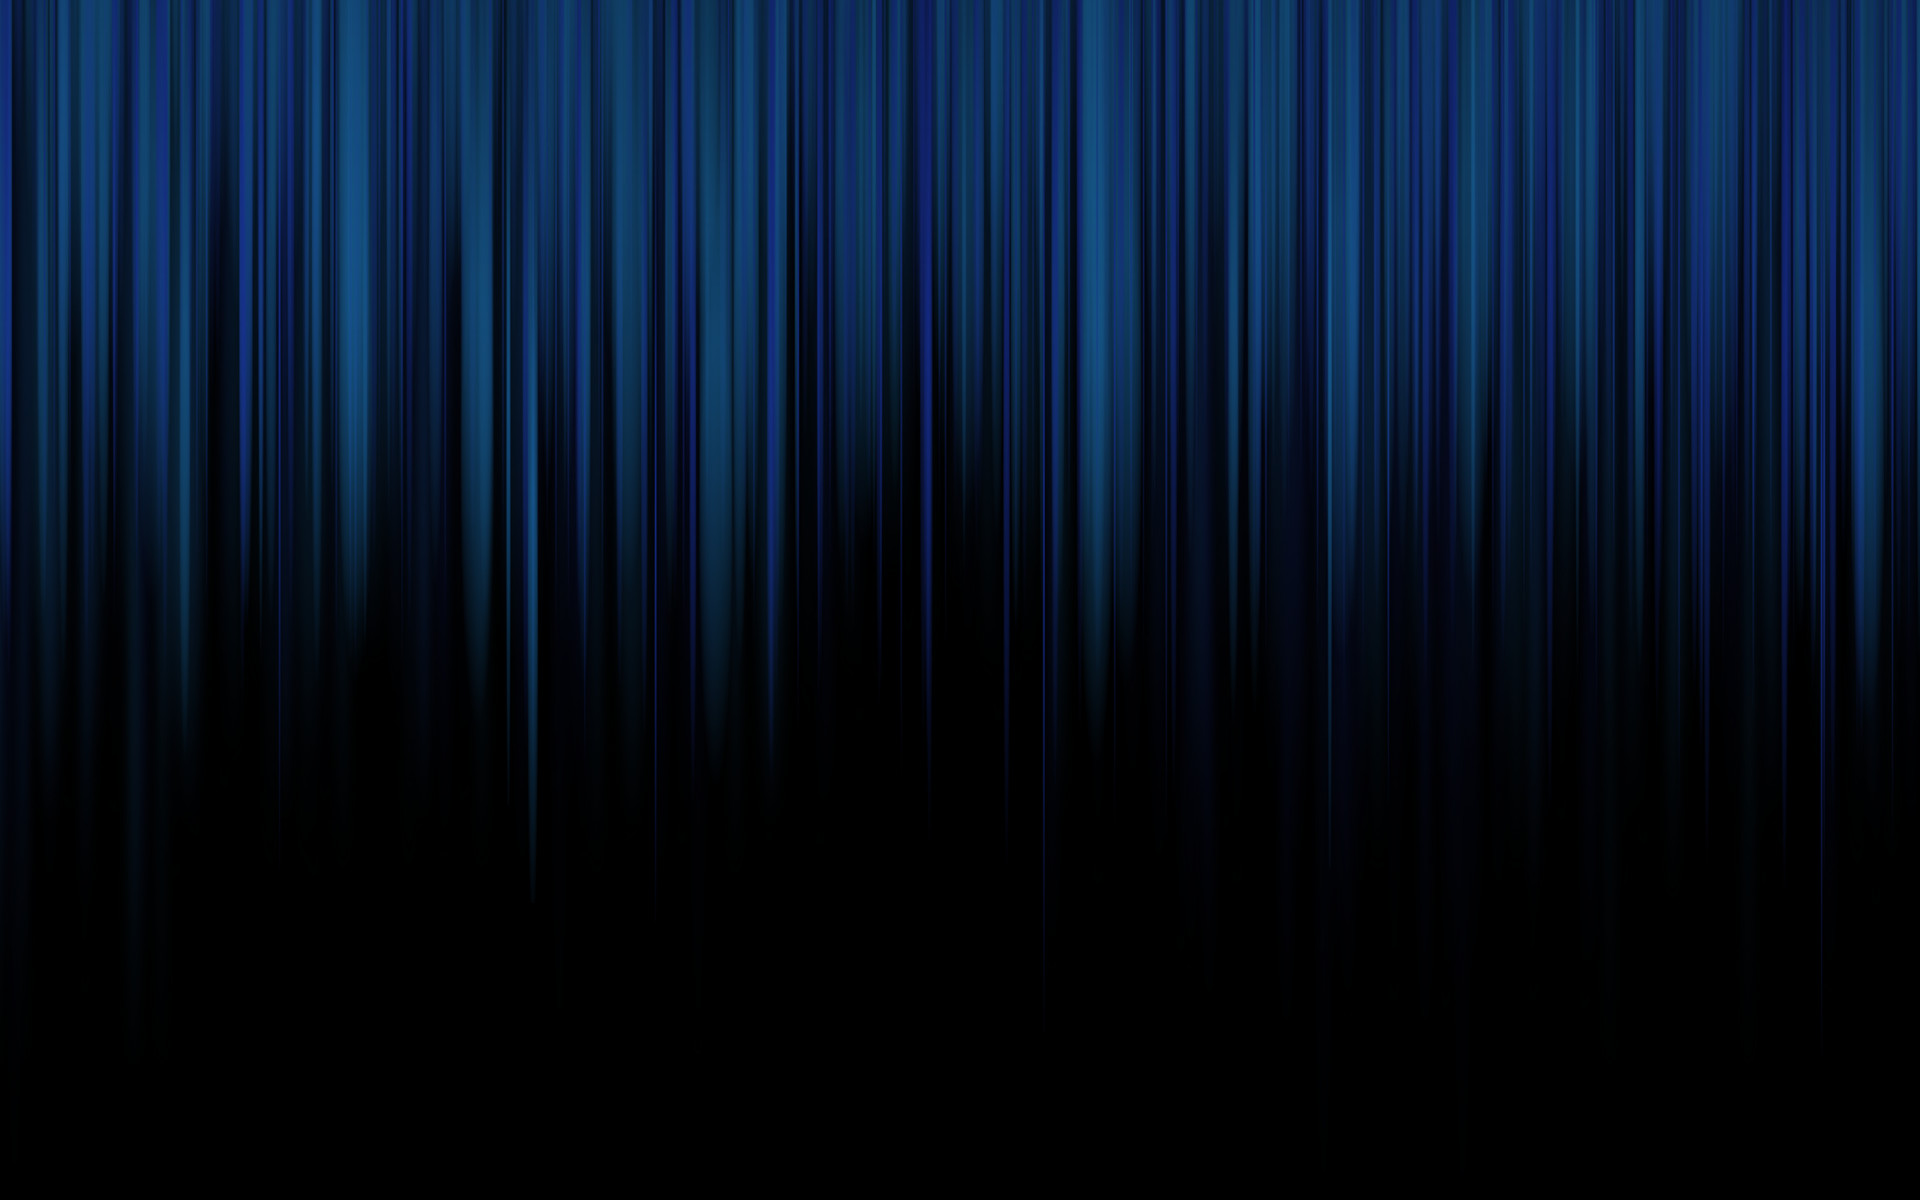 Navy Blue Background (37+ images)